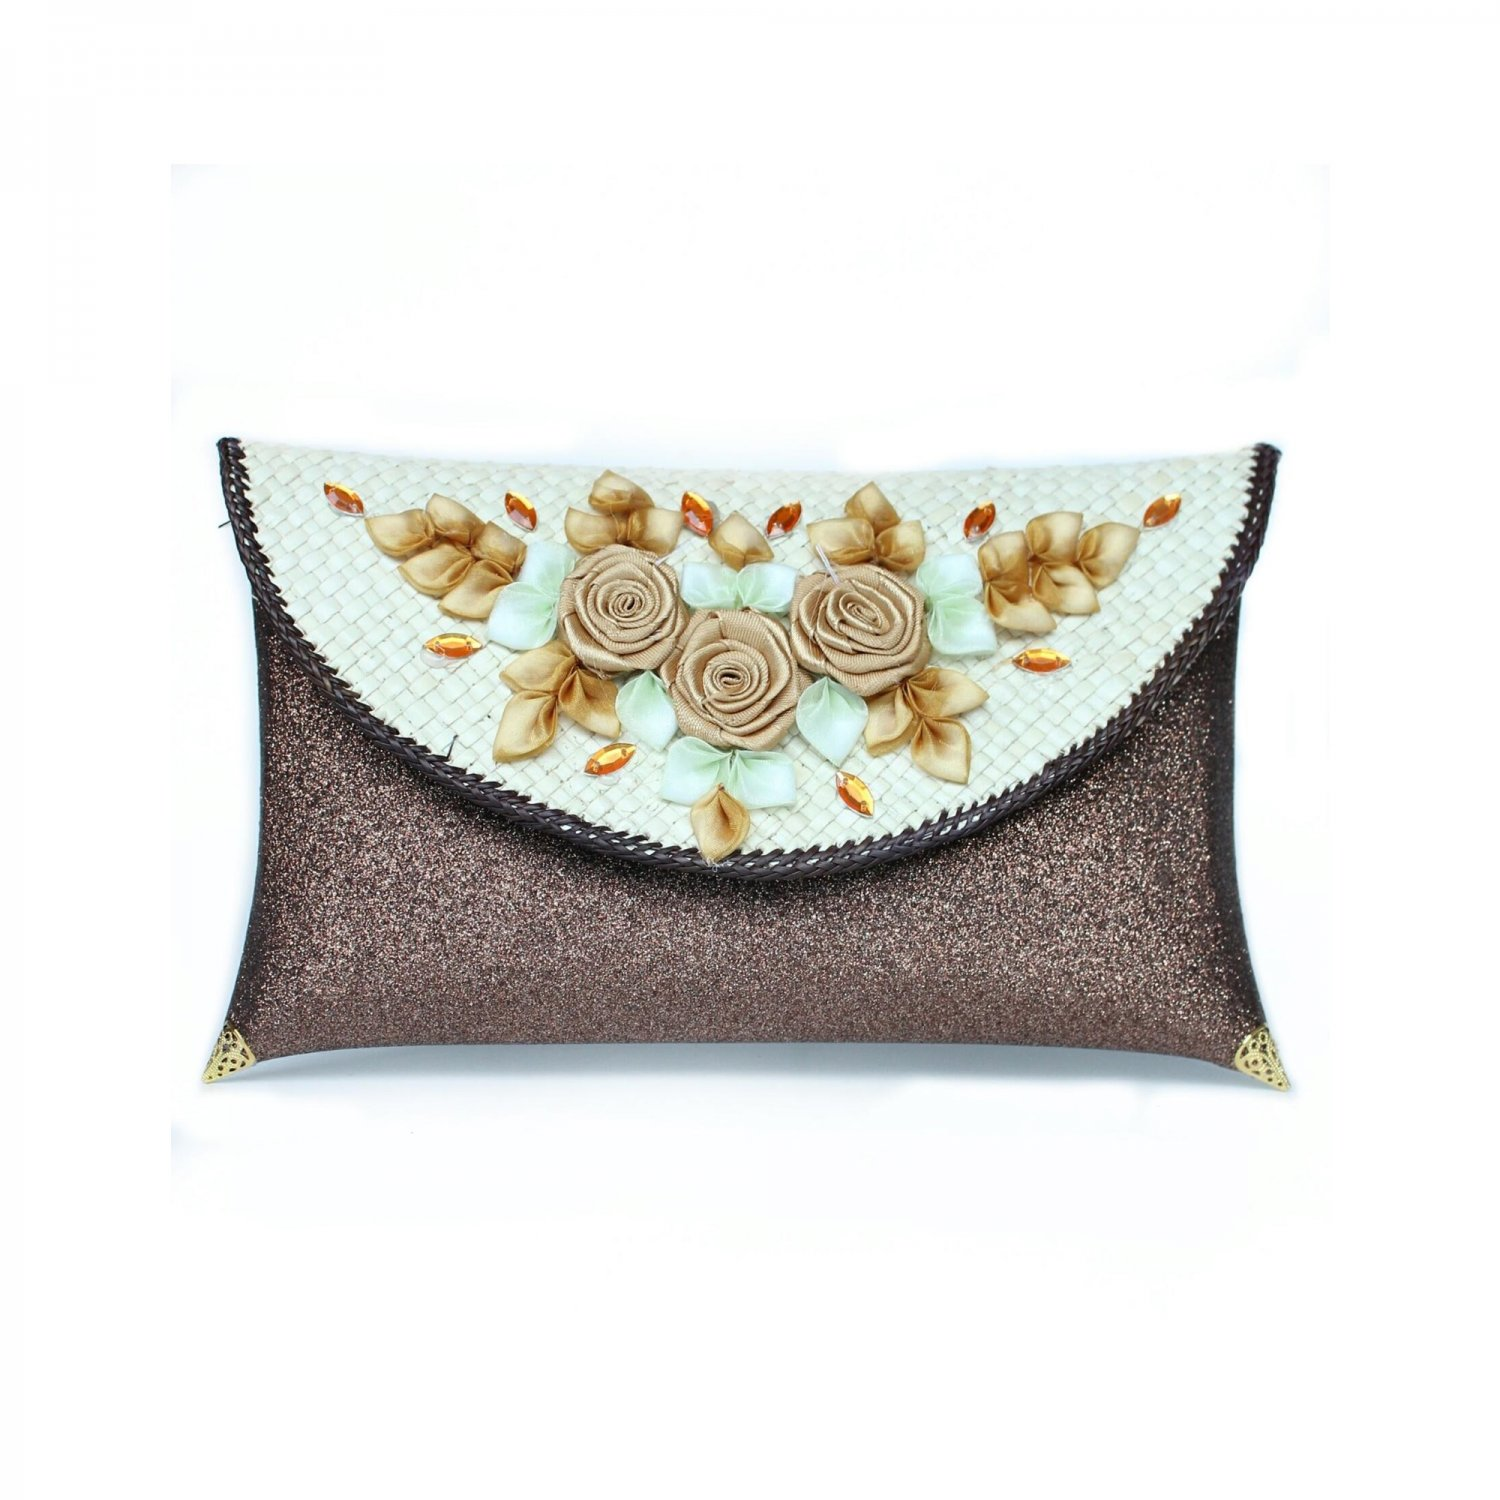 Pandan Clutch bag with Glitter Color and Flower Embroidery, Woman Accessories, Indonesia Craft